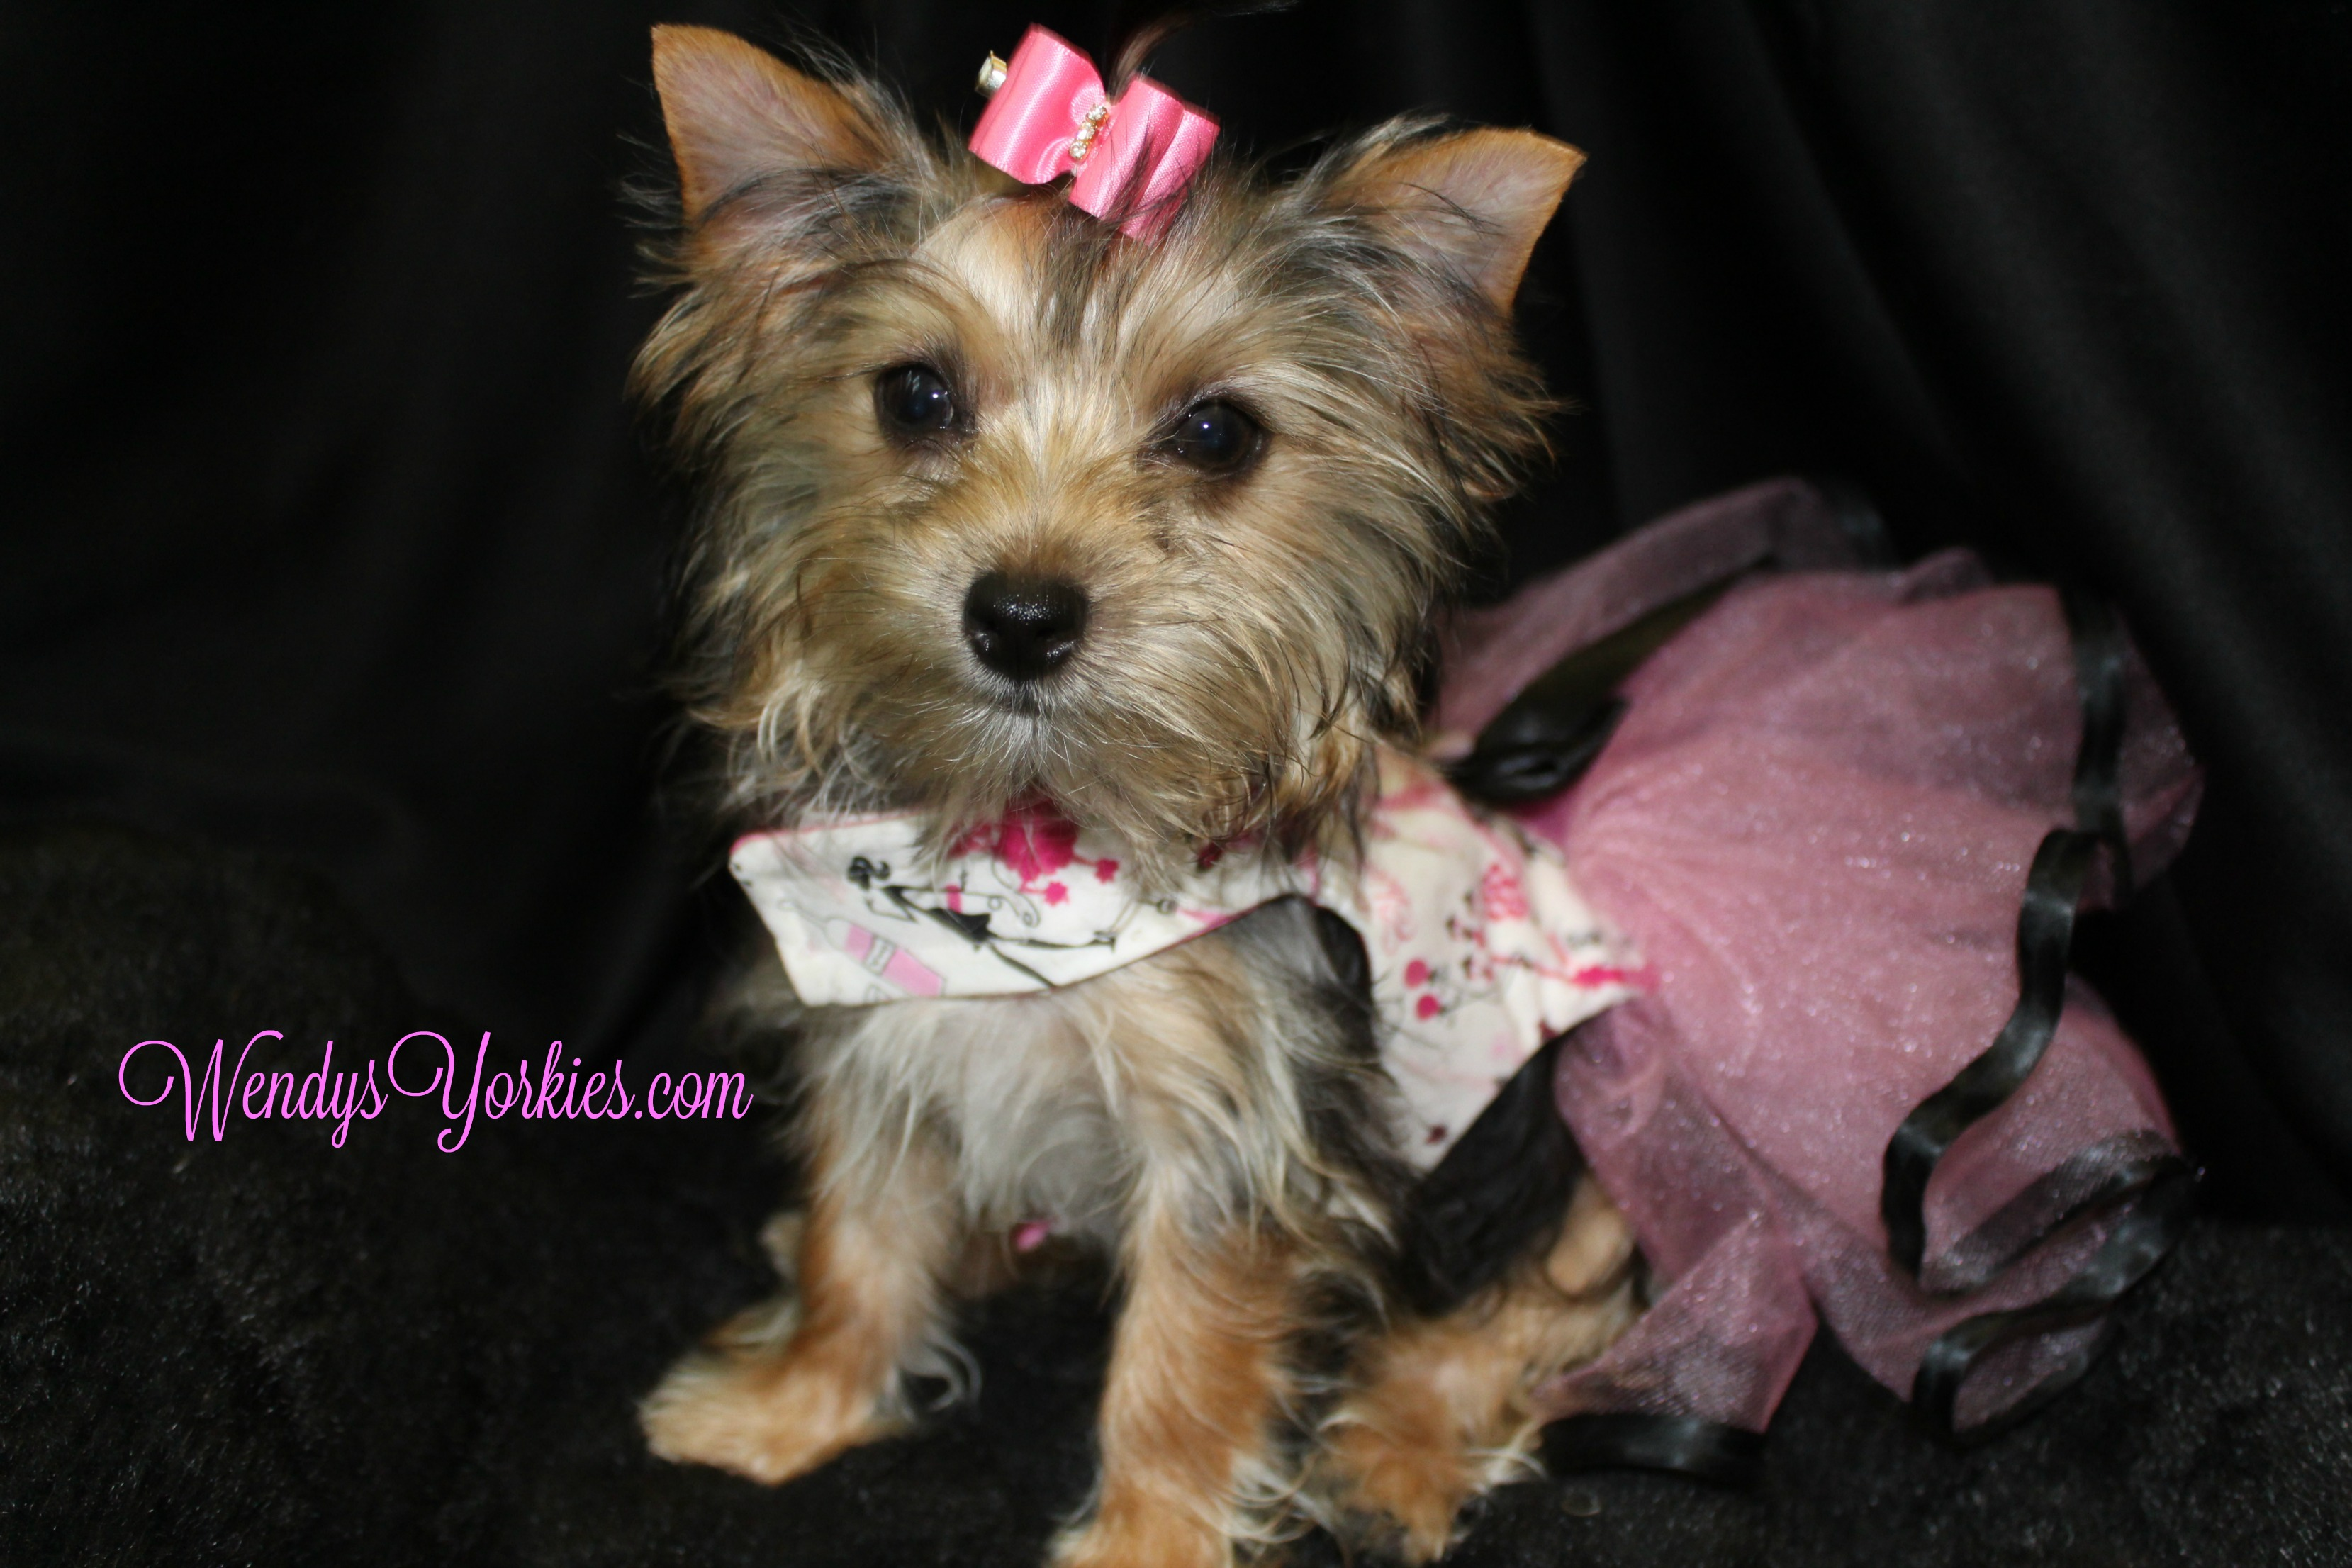 Teacup Yorkie puppy for sale, WendysYorkies.com, Blossom,